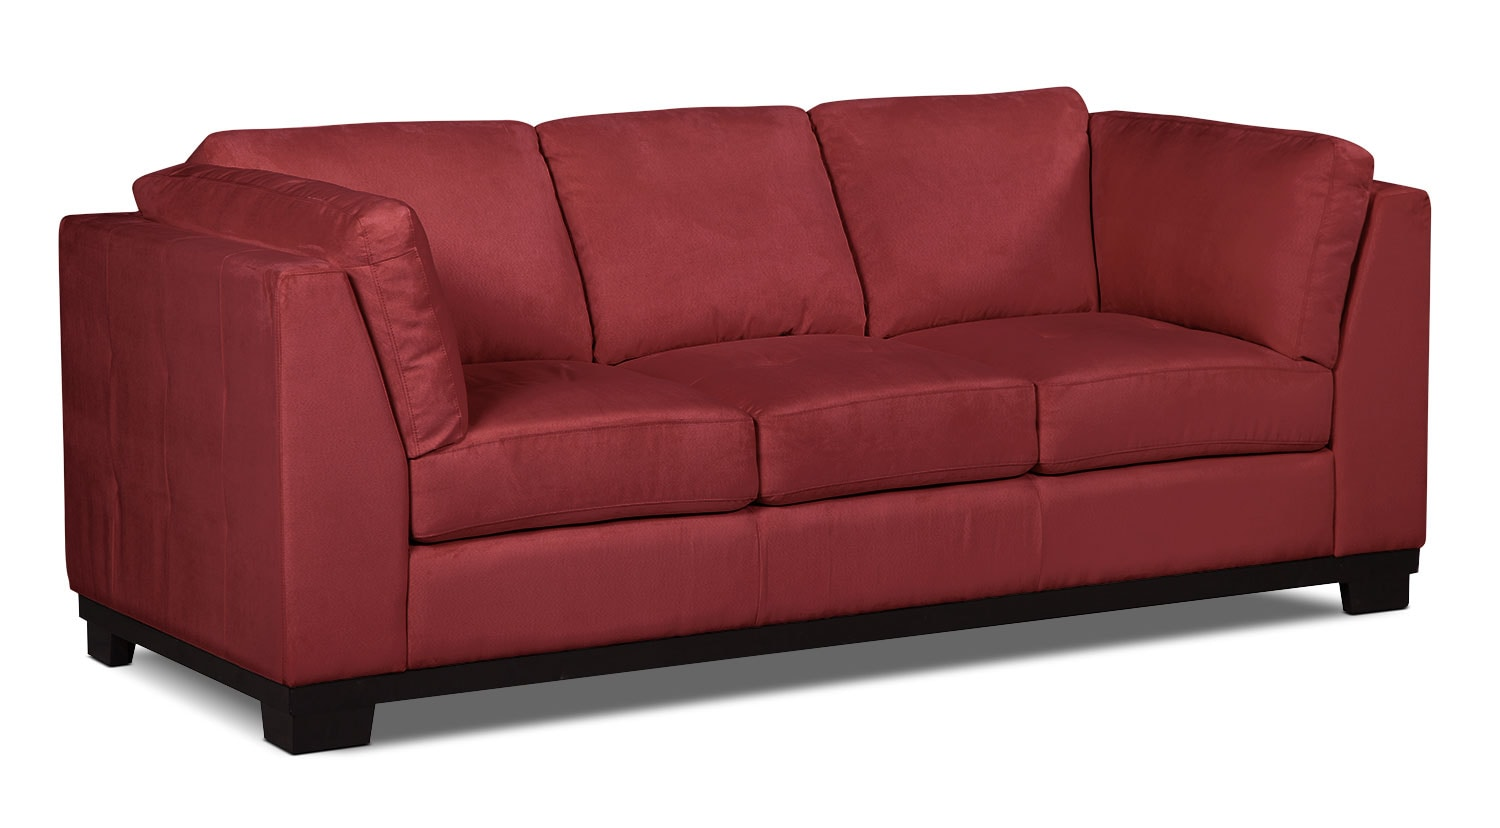 Oakdale Microsuede Sofa Red The Brick